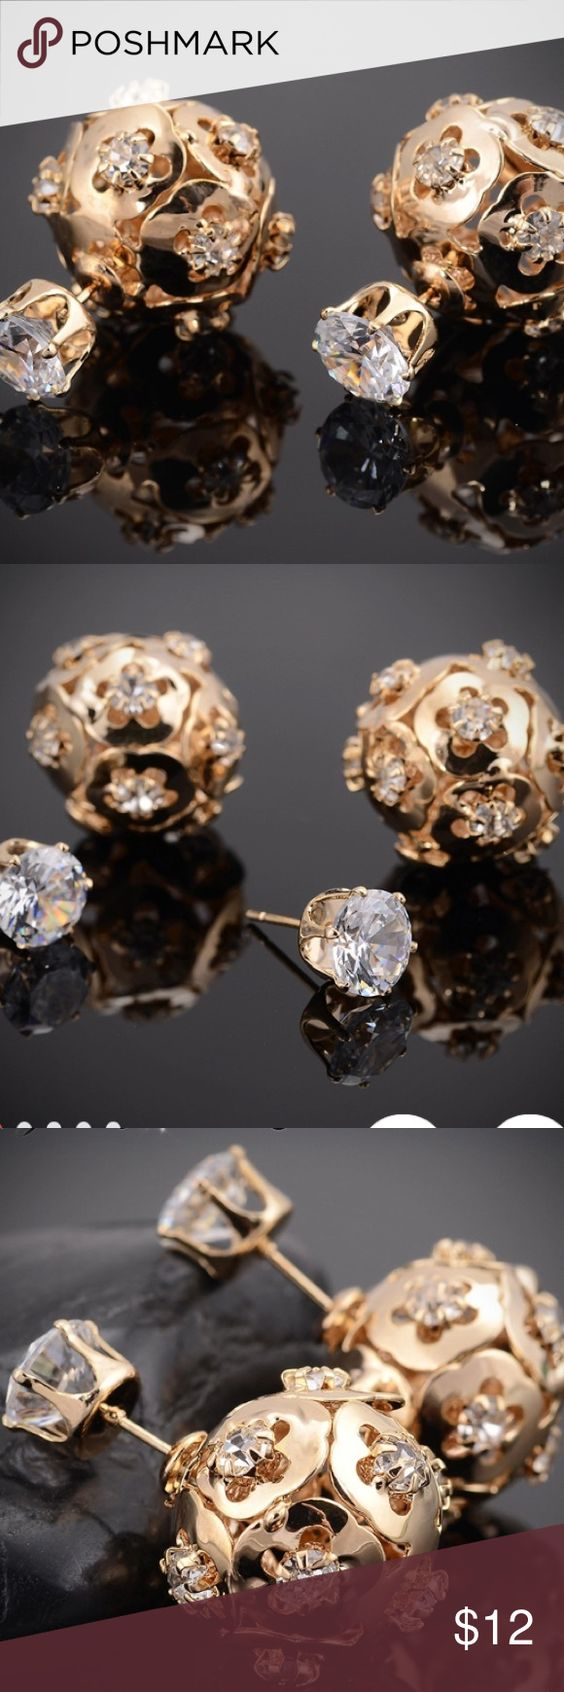 Sale‼️ Hollow double sided crystal ball earrings! I fell in love at first sight. These earrings are not only unique but the design is flawless and this is what fashion is all about! Extraordinary amazing fashion accessories that make a statement! Item comes in a pink box  Jewelry Earrings